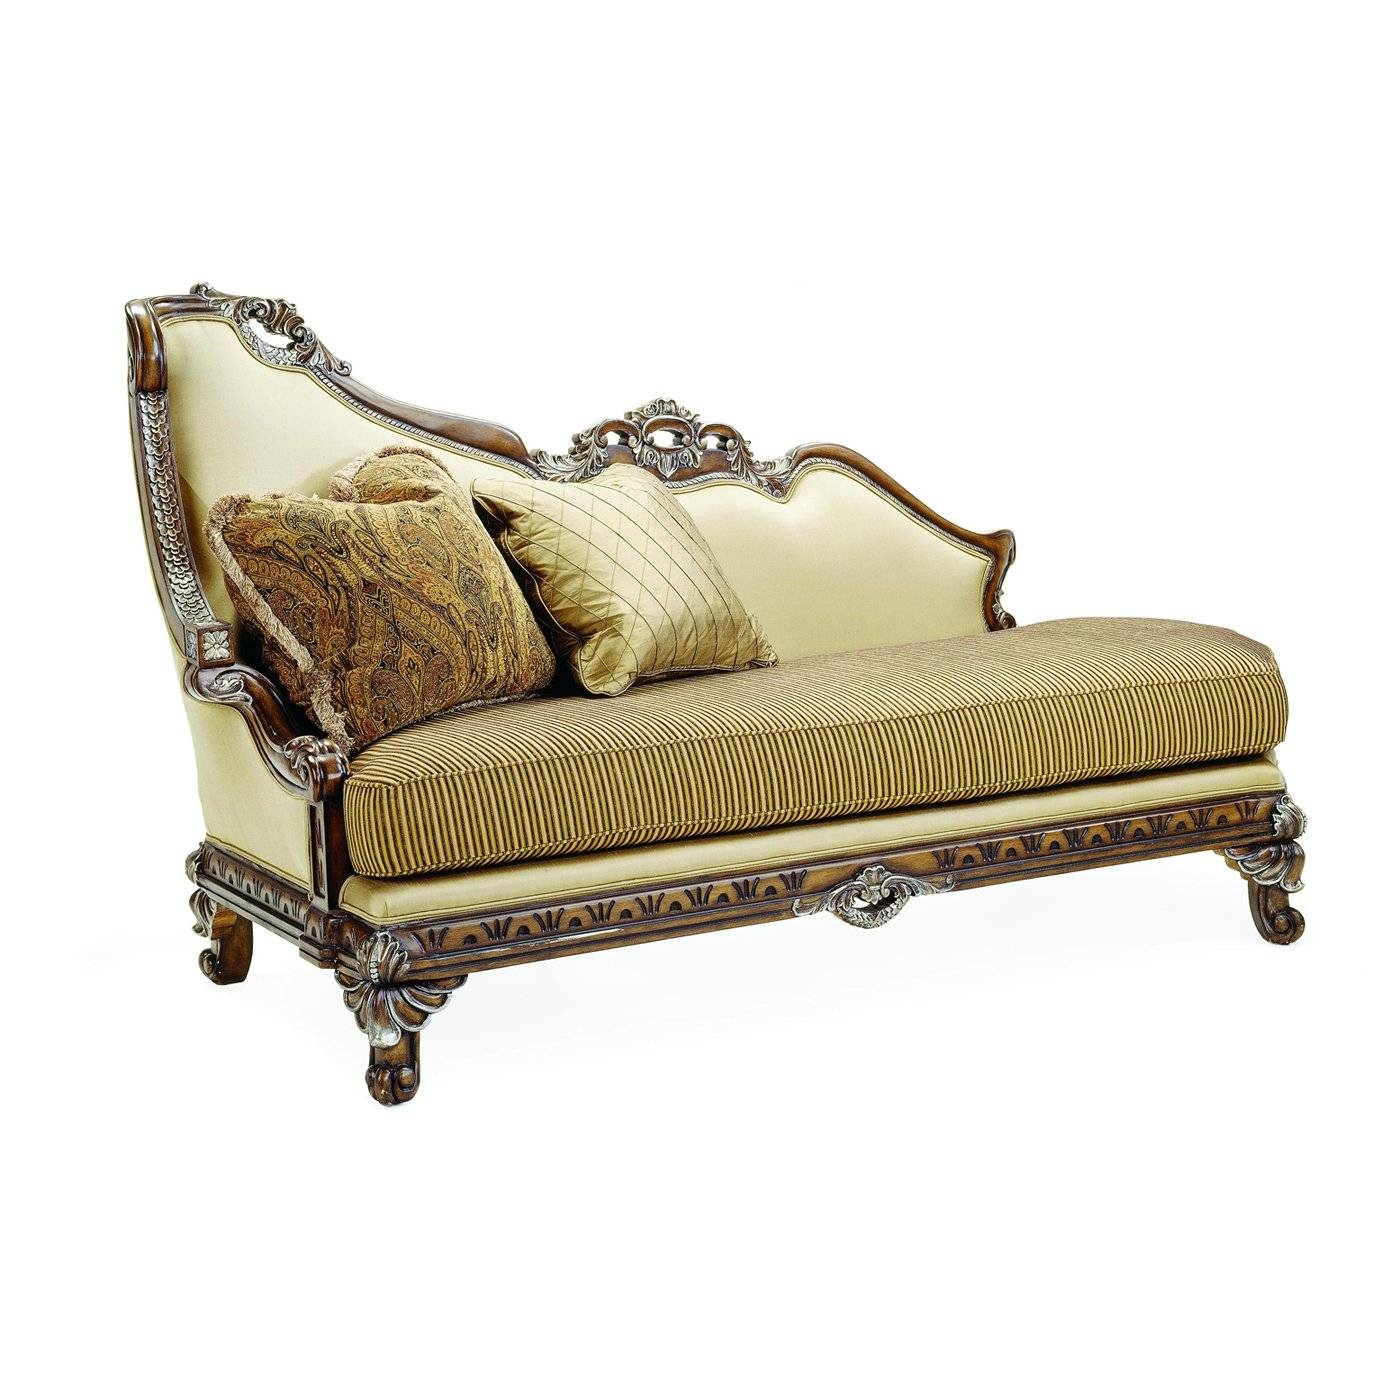 Furniture: Fabulous Fainting Couch For Living Room Or Bedroom inside Old Fashioned Sofas (Image 5 of 30)